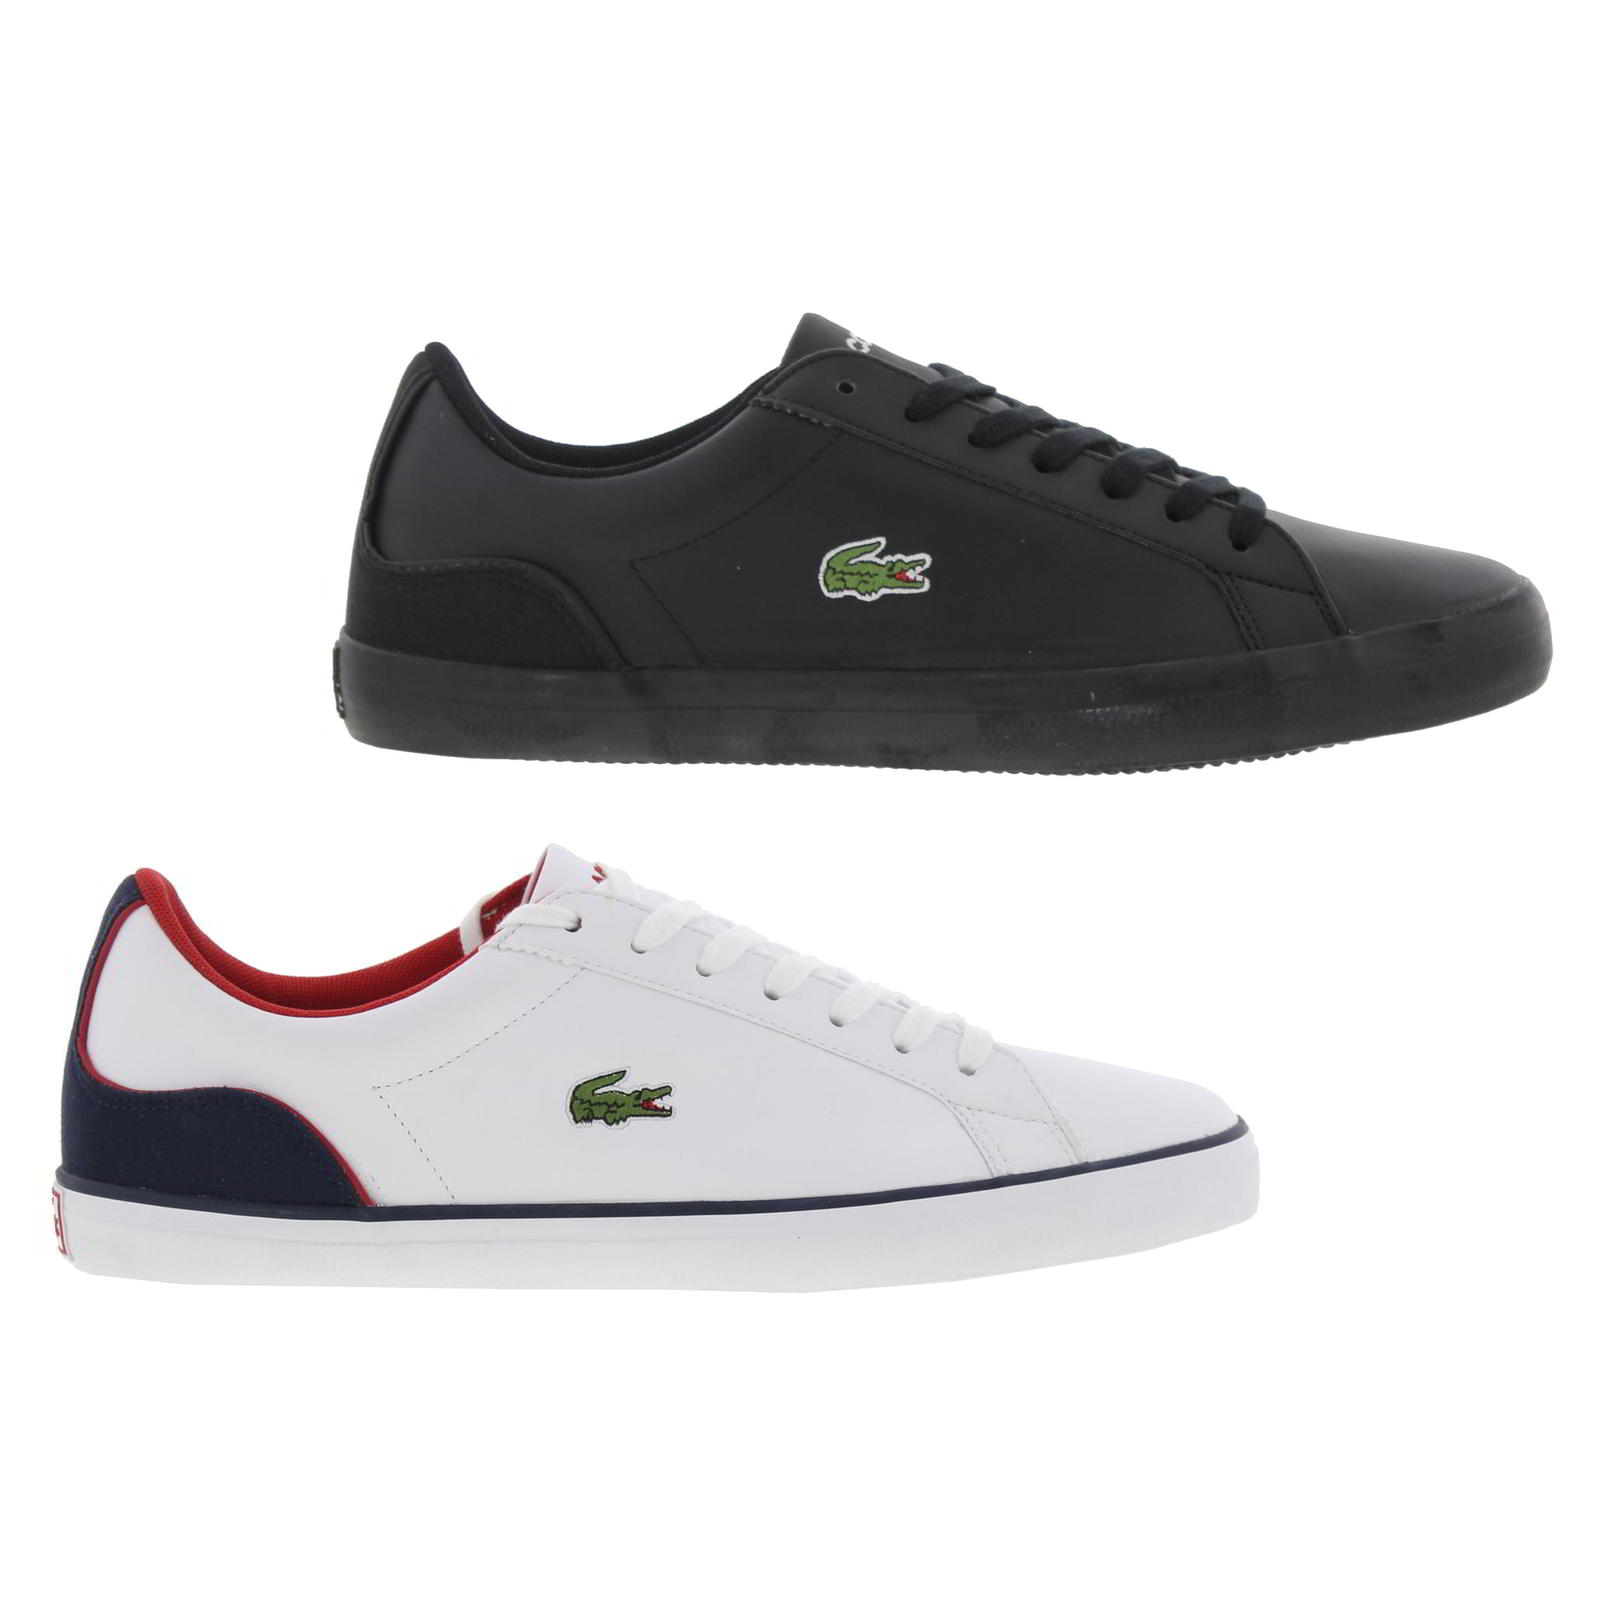 lacoste shoes first copyright issued shares of stock